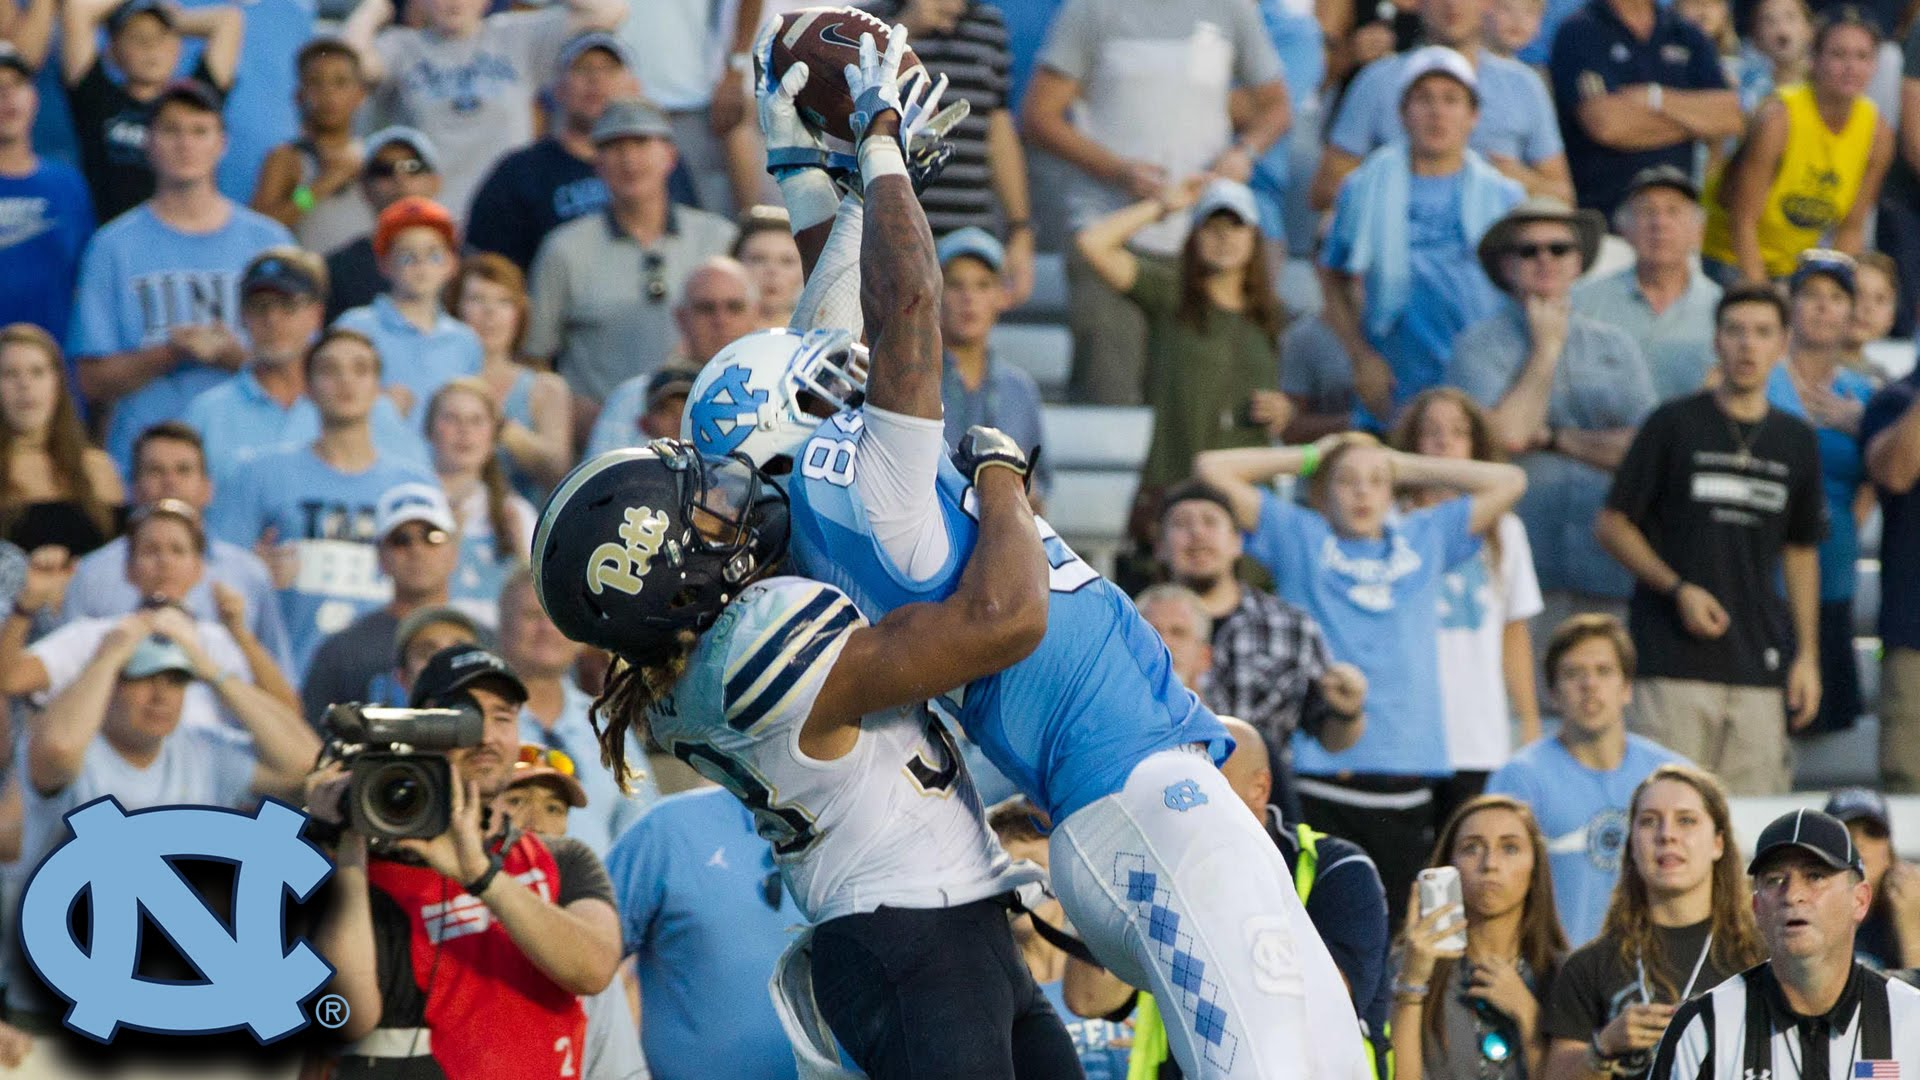 North Carolina beats Pittsburgh on a last second touchdown pass